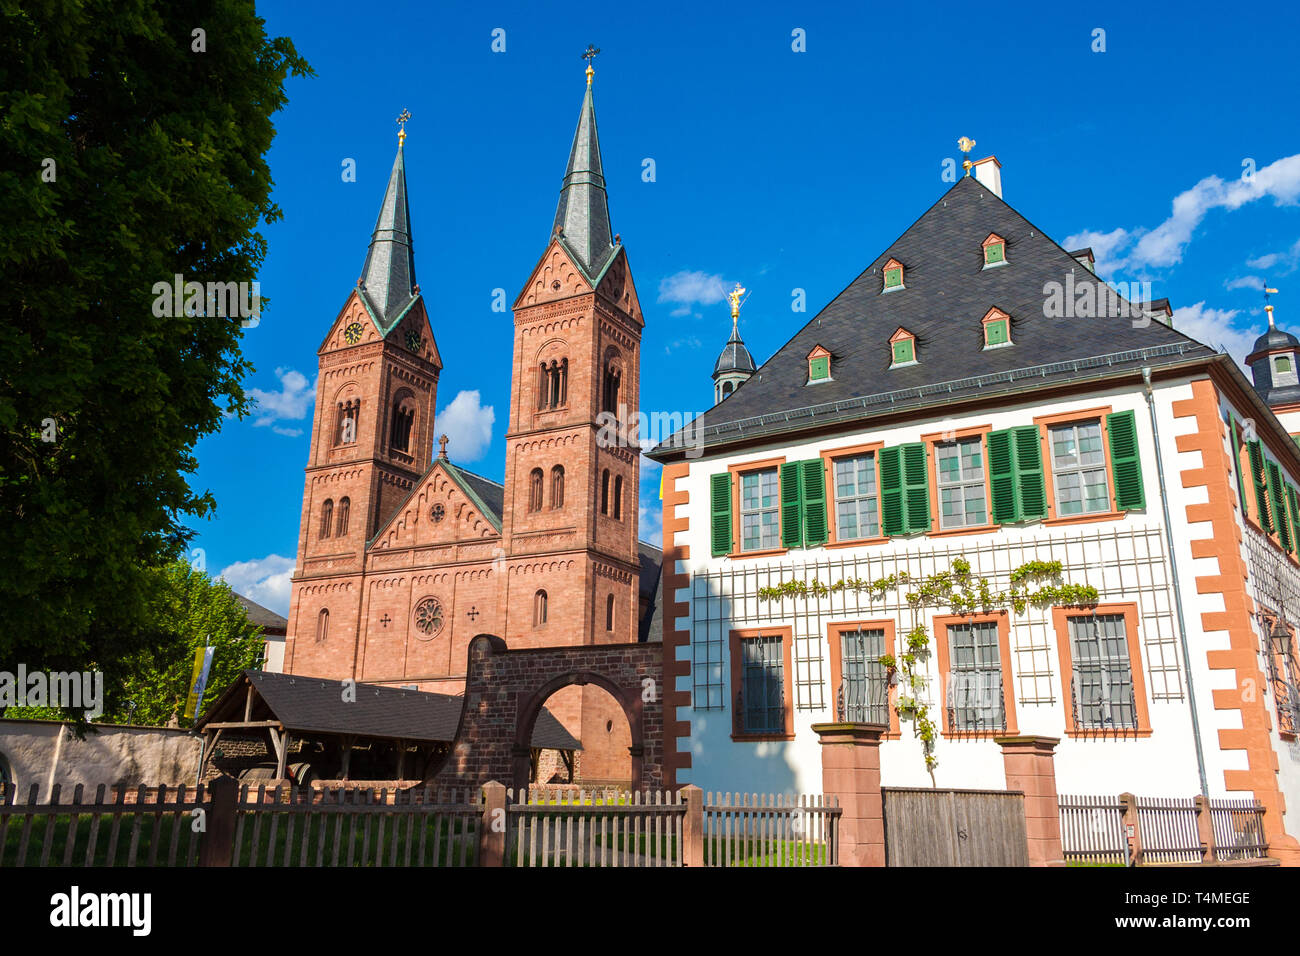 Seligenstadt's famous landmark, the Einhard-Basilika (Basilika St. Marcellinus & Petrus) with its two Romanesque Revival towers next to the former... - Stock Image